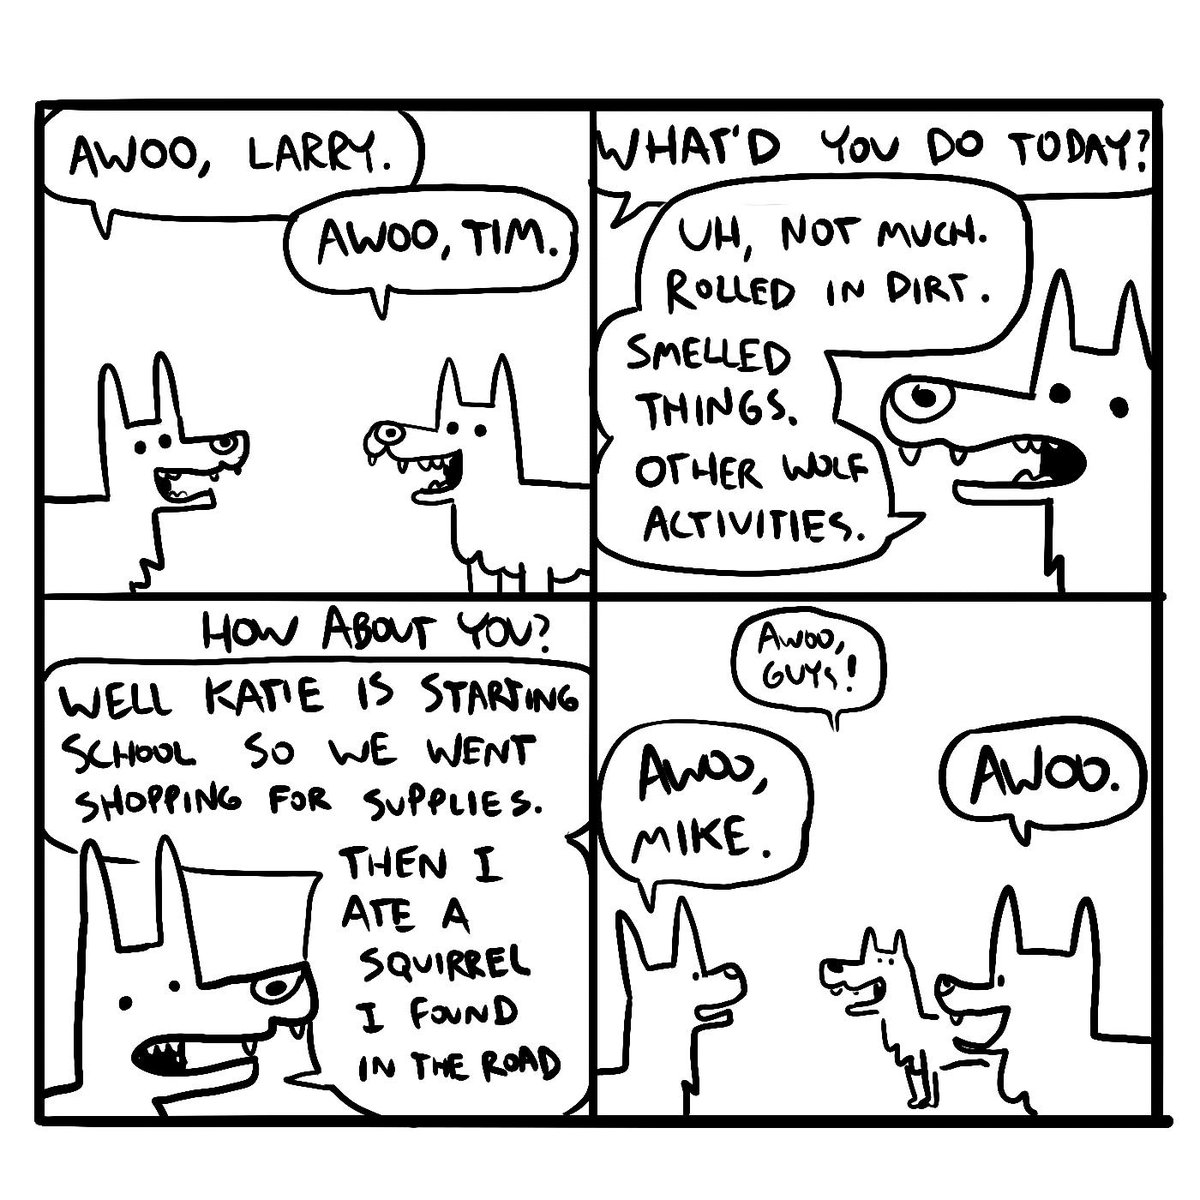 I made a comic about wolf activities.